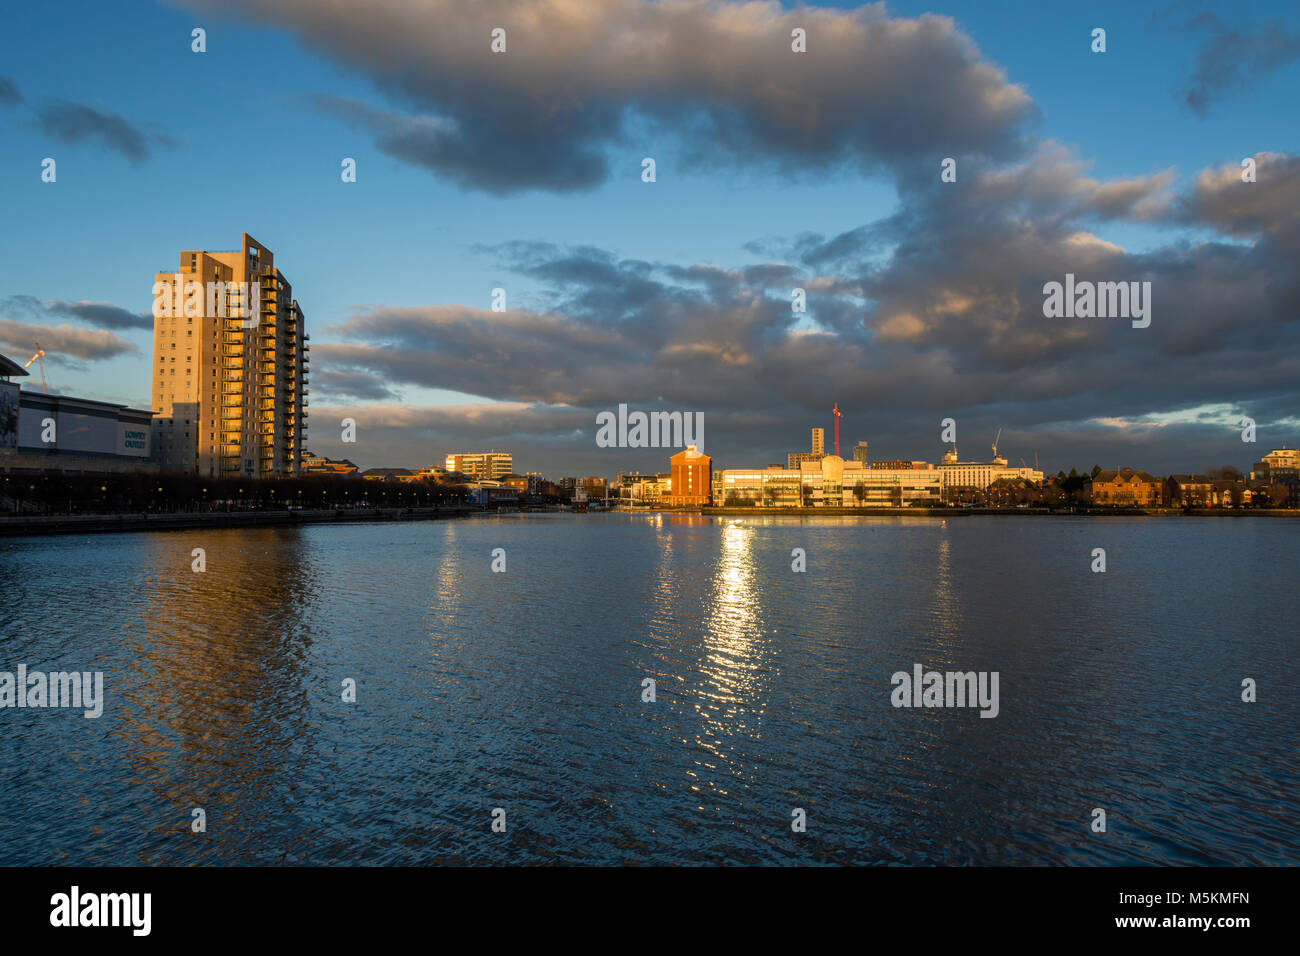 Late afternoon sun at Salford Quays, Manchester, UK.  The Sovereign Point apartment block at left. - Stock Image